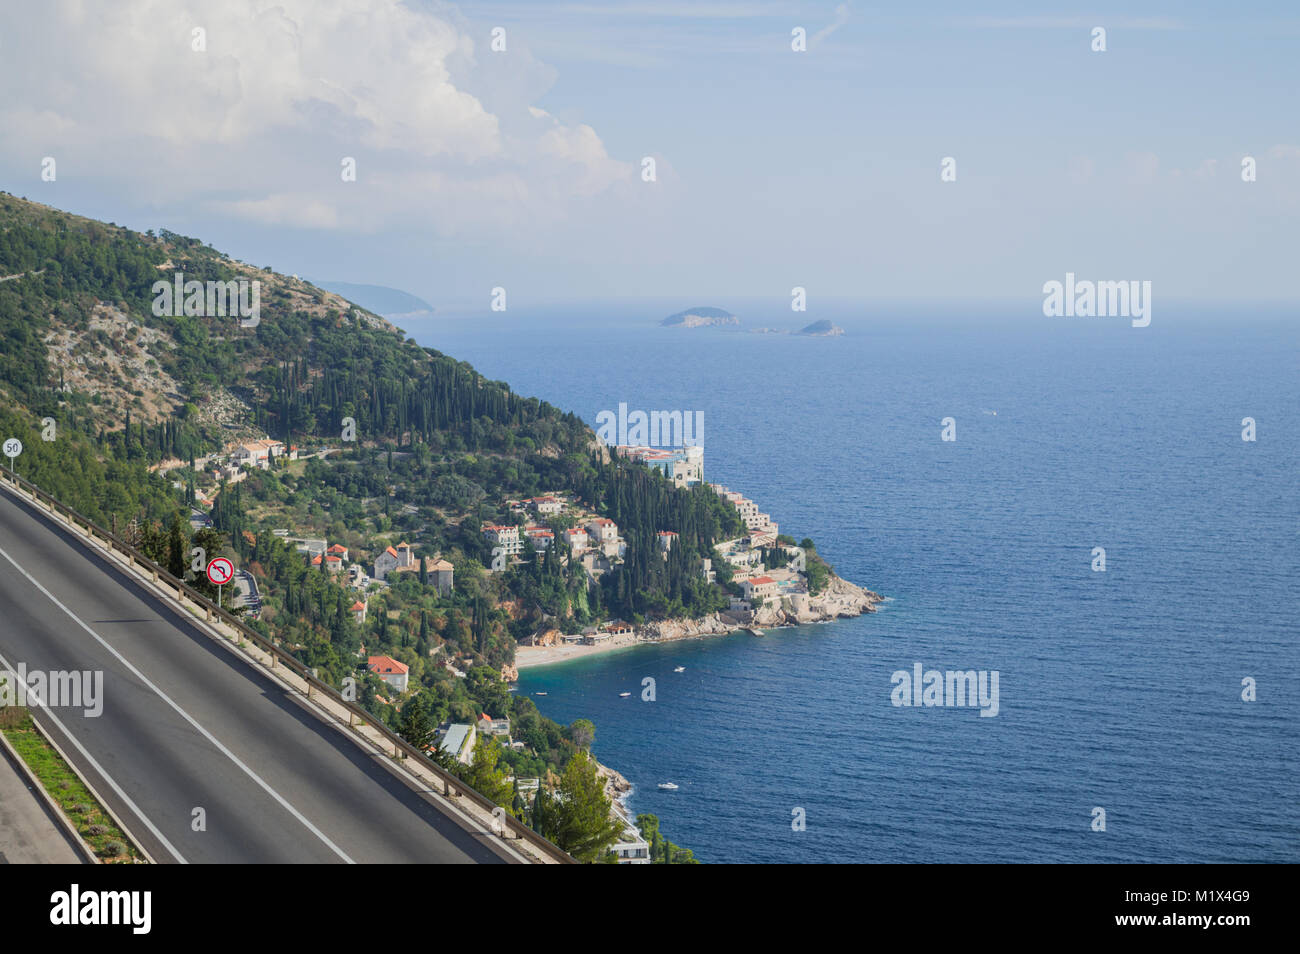 Picturesque Coastal Road with View onto Dubrovnik, Croatia - Stock Image